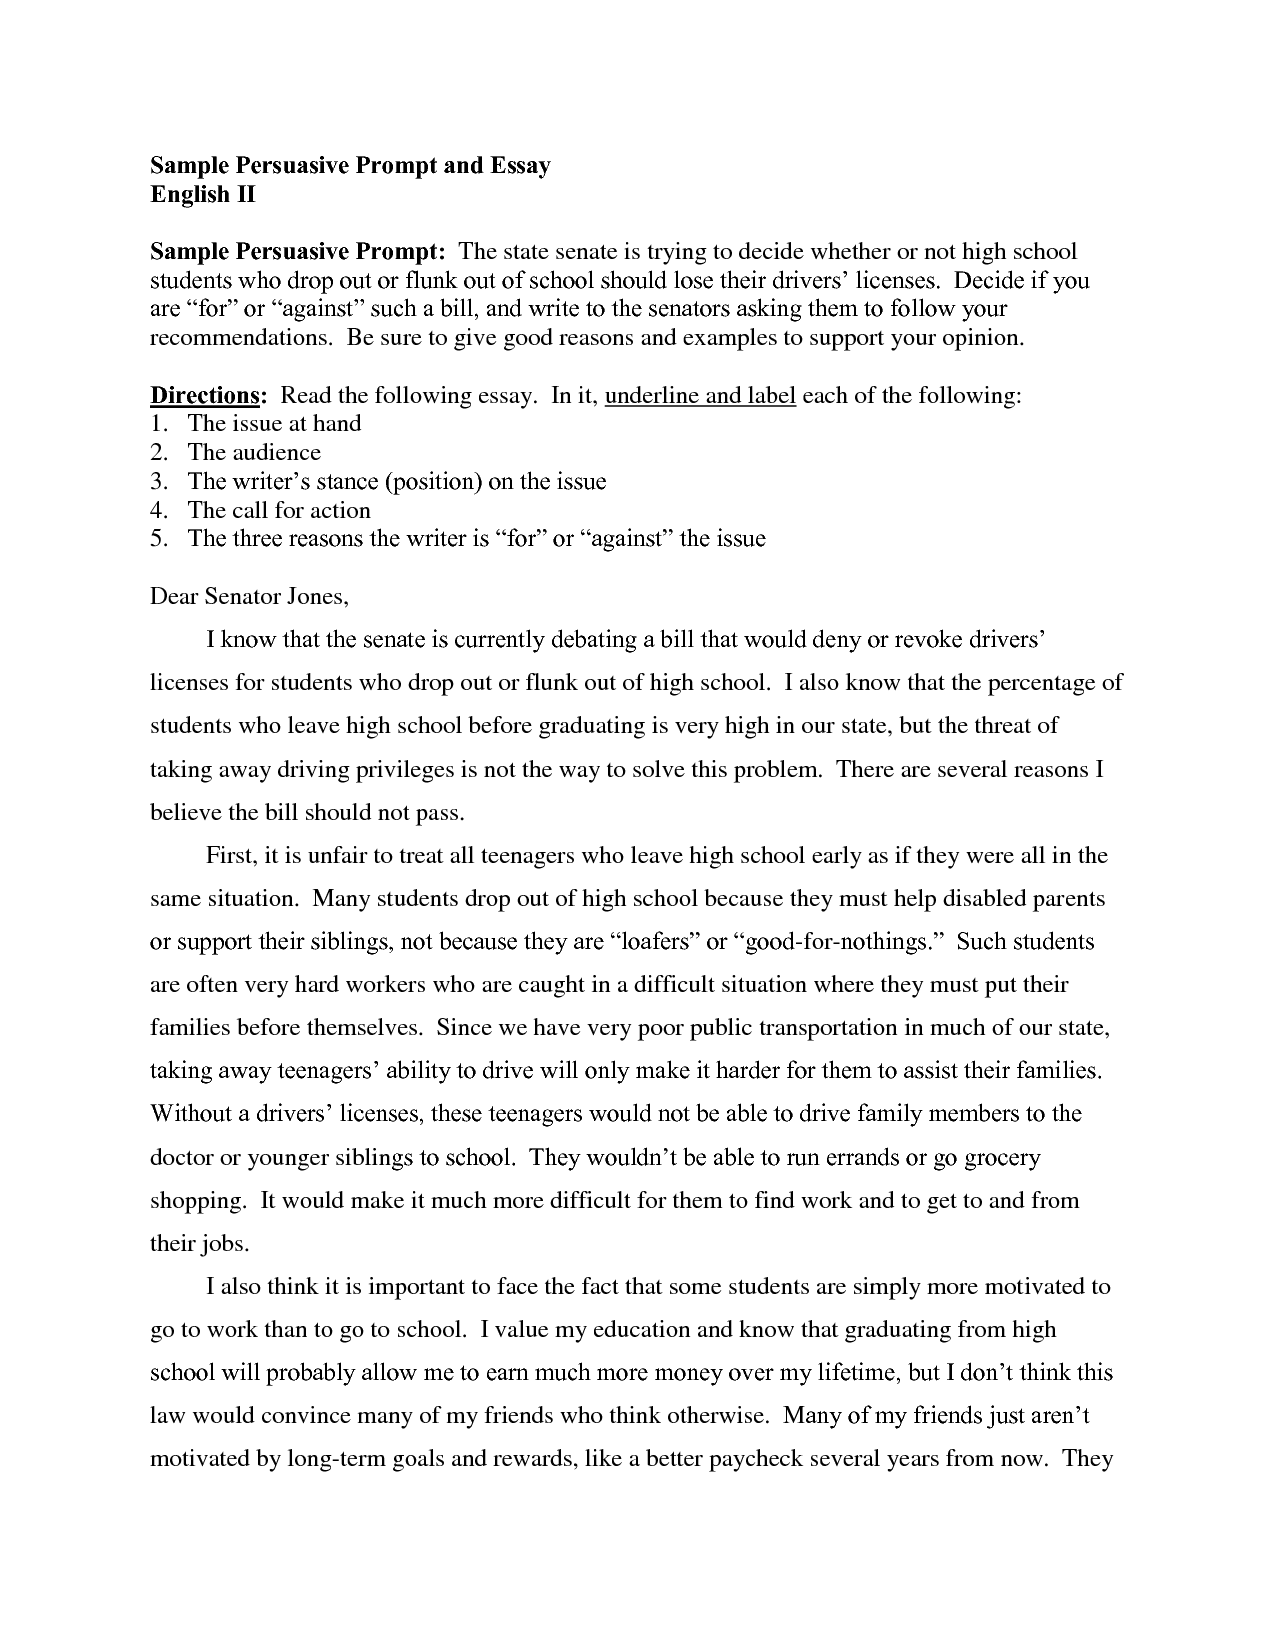 013 Research Paper Easy Topic Persuasive Essay Topics For High School Sample Ideas Highschool Students Good Prompt Funny Fun List Of Seniors Writing English Sensational Biology Science Full